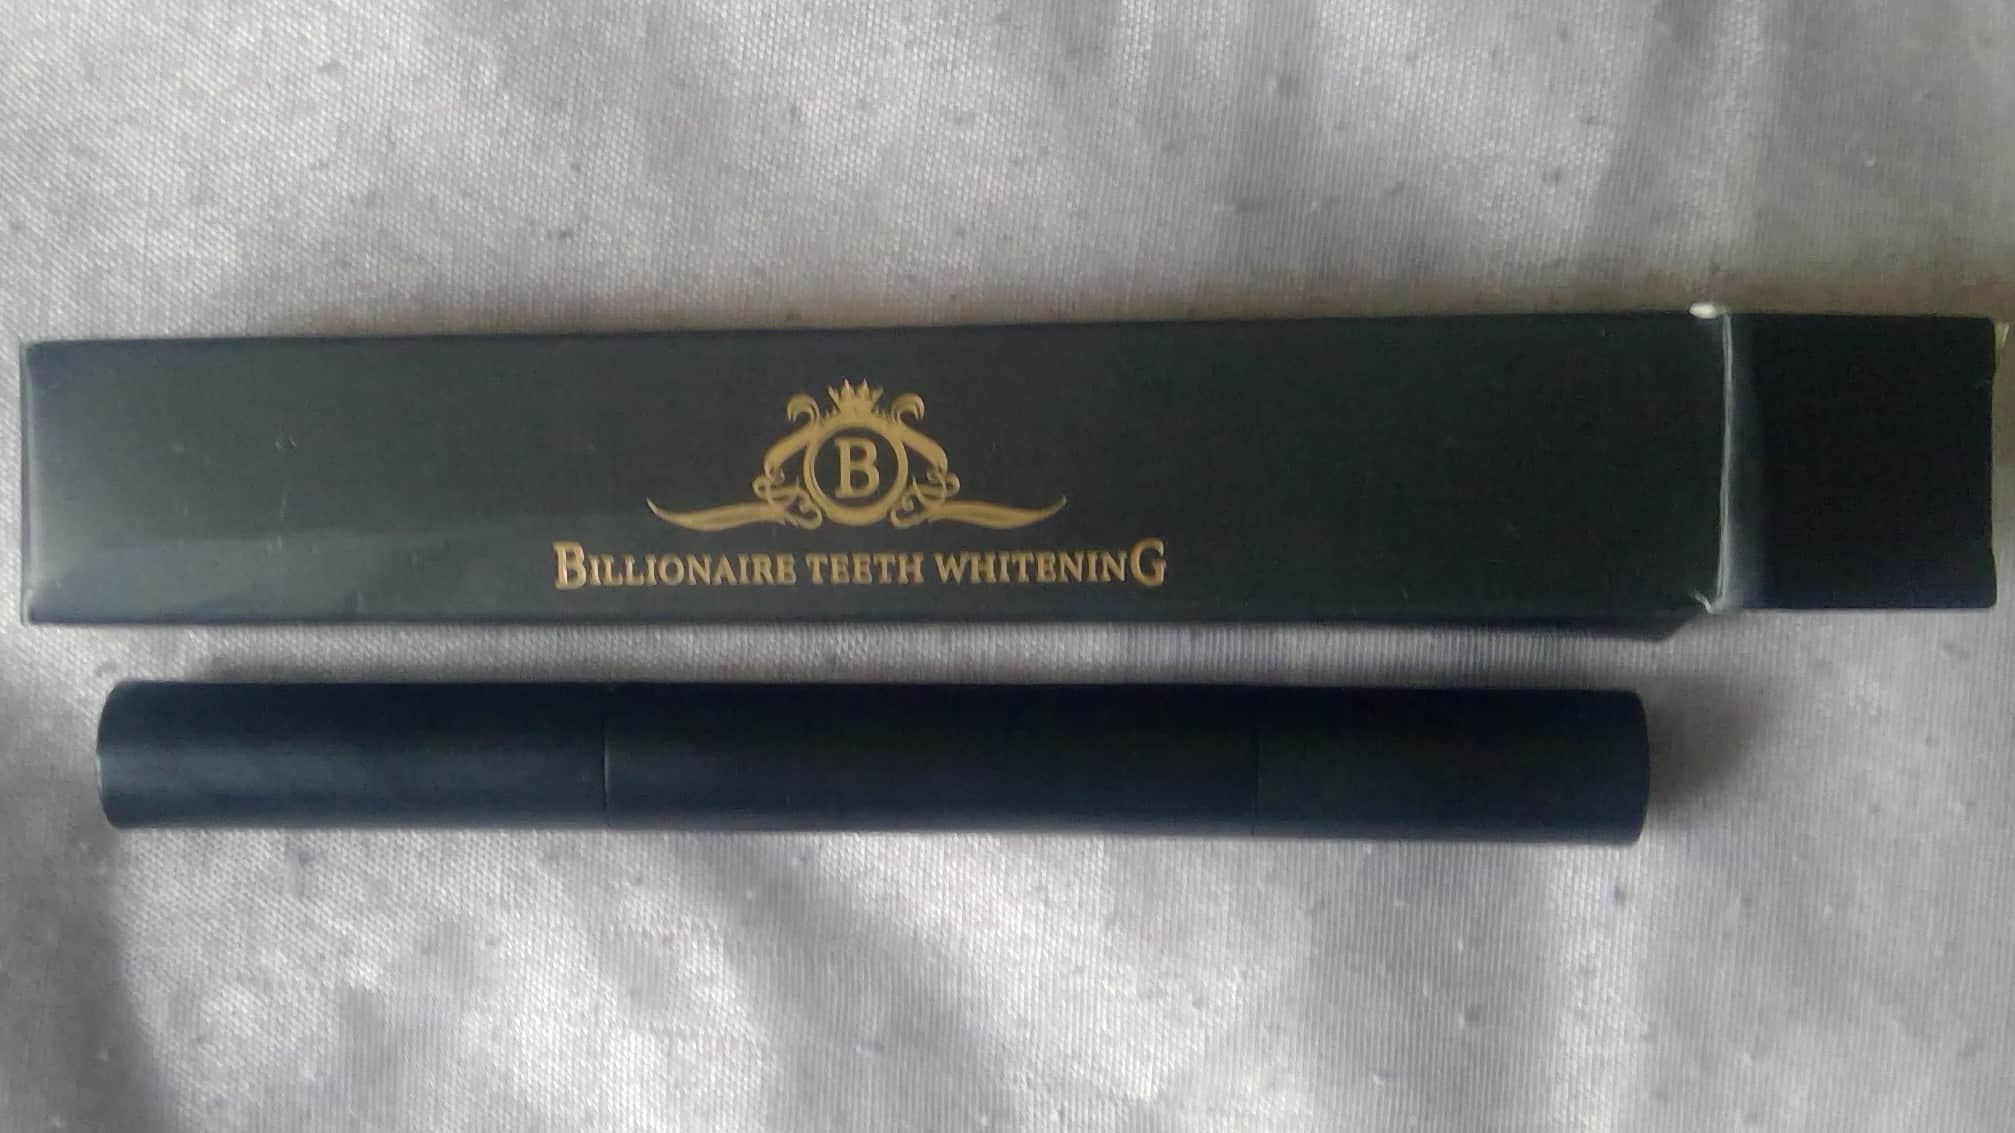 billionaire teeth whitening pen